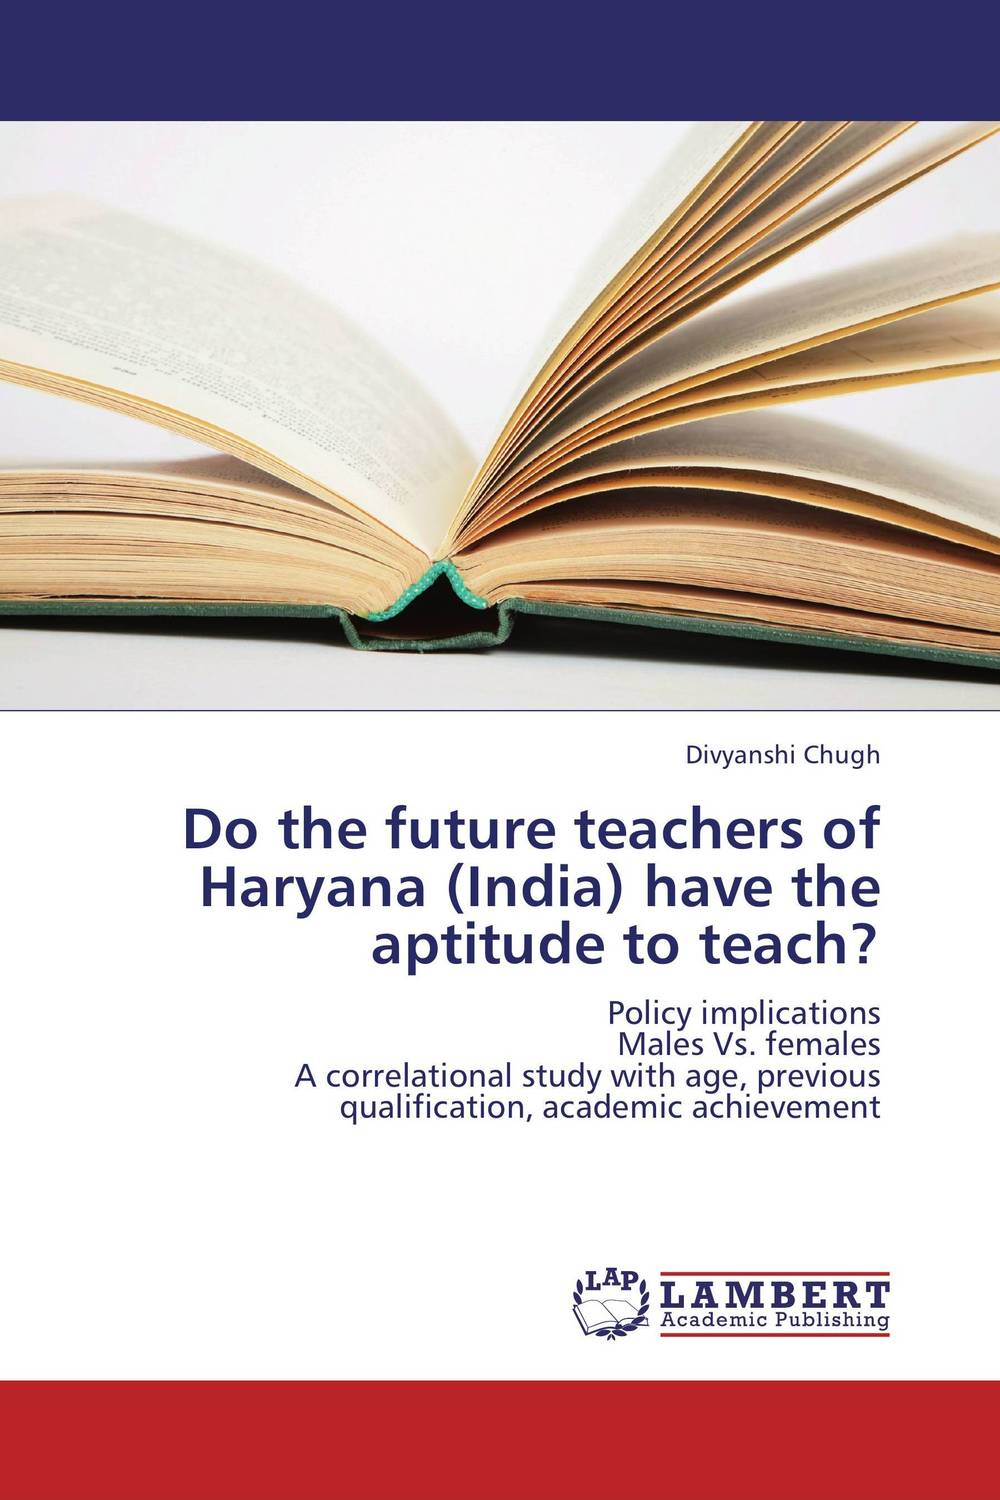 Do the future teachers of Haryana (India) have the aptitude to teach? found in brooklyn